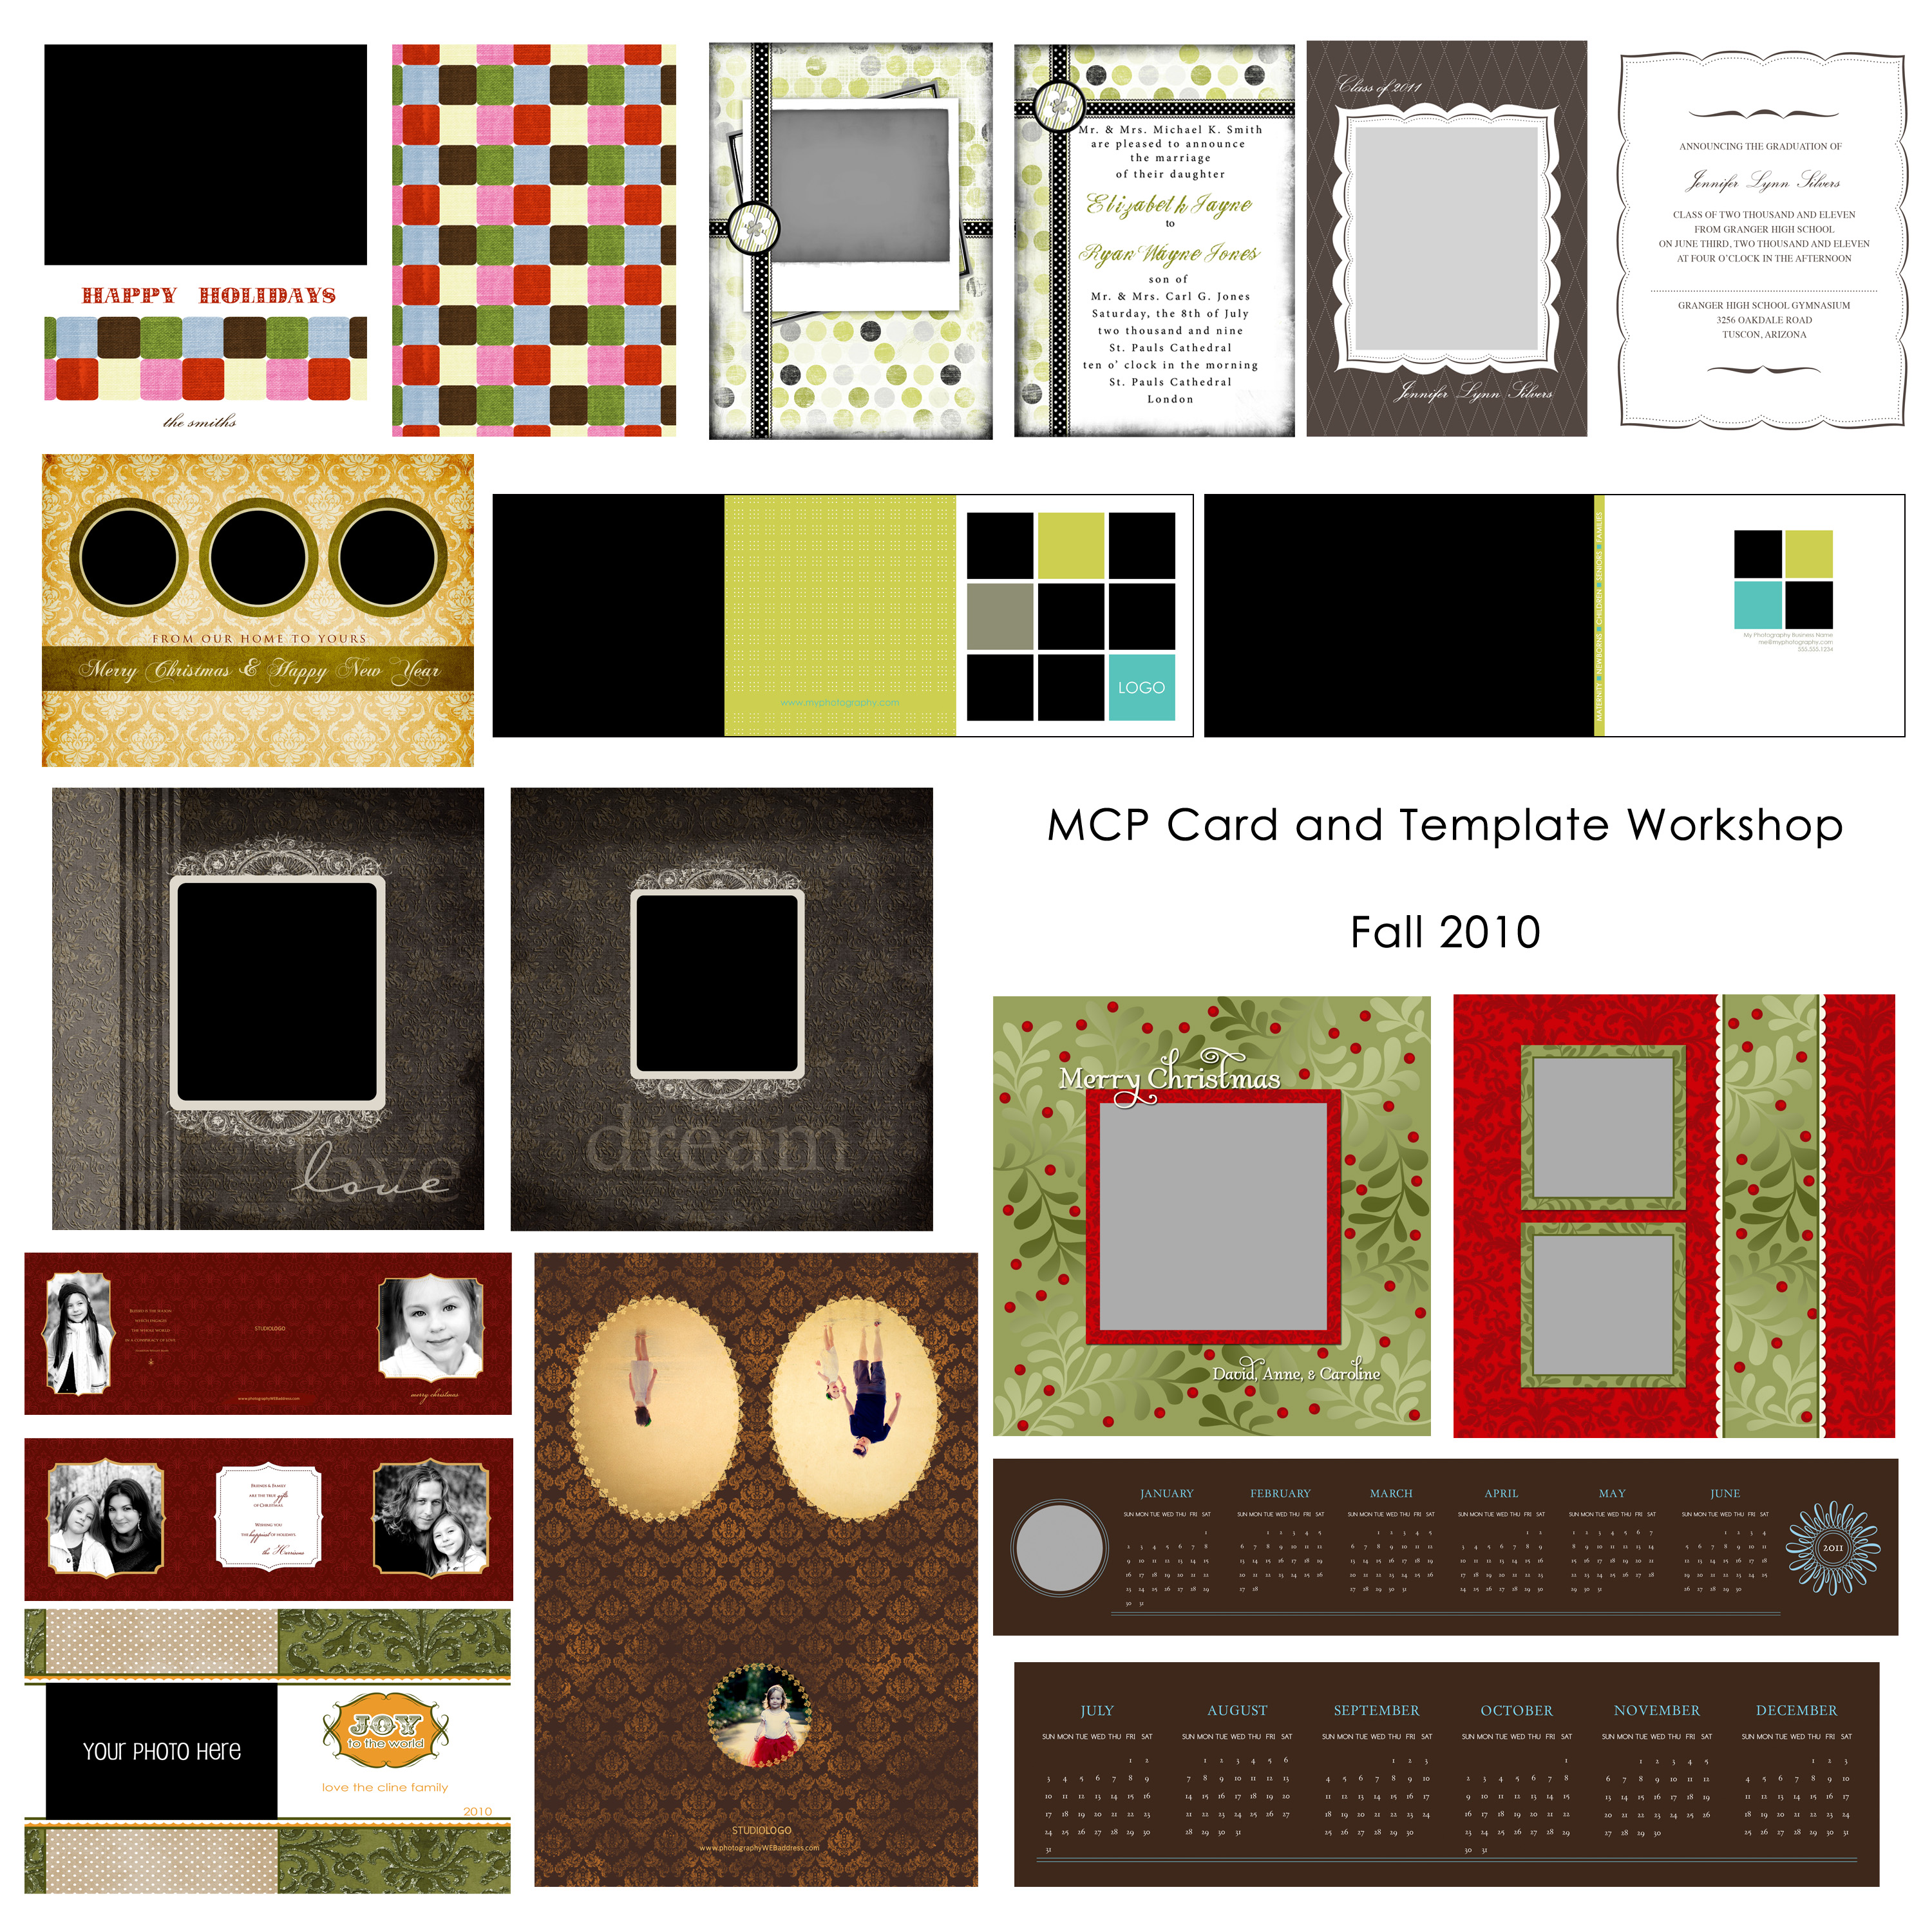 card-display How to Use Cards & Templates: Online Photoshop Class (+ Free Cards/Digital Papers) Announcements Workshops